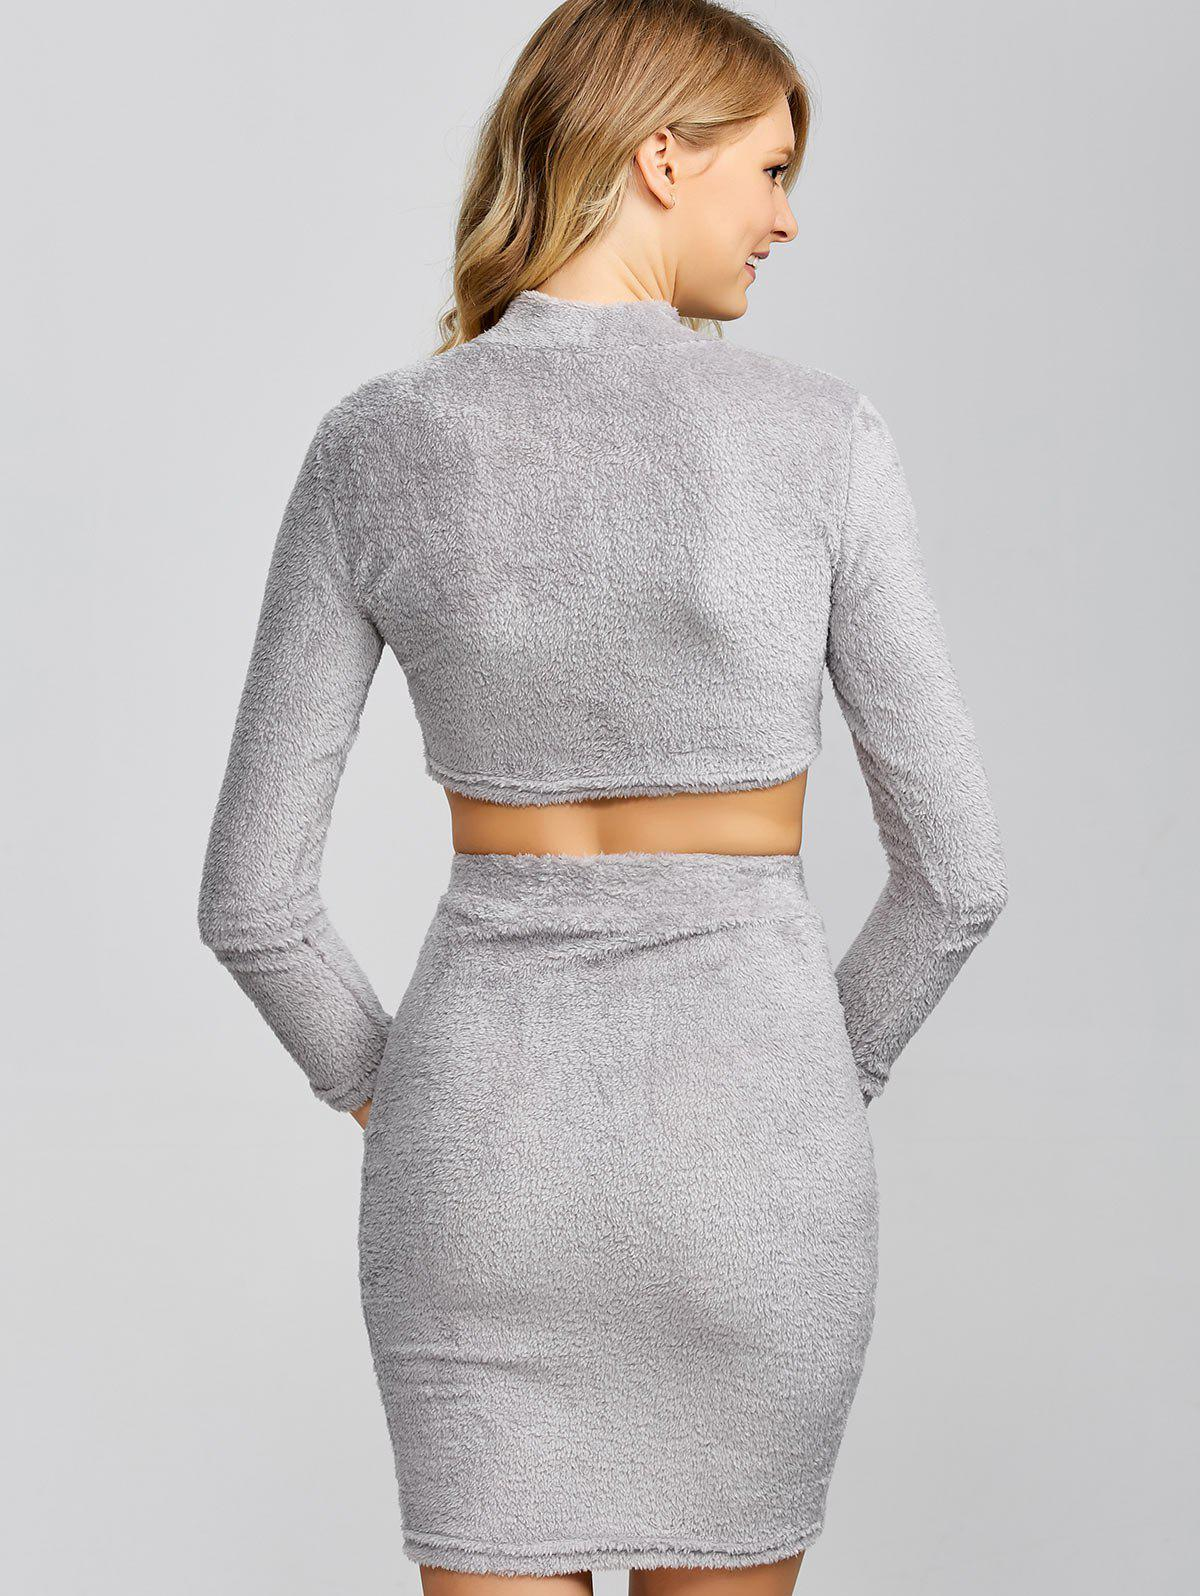 Cropped Sweater and Knitted Bodycon Skirt - GRAY L